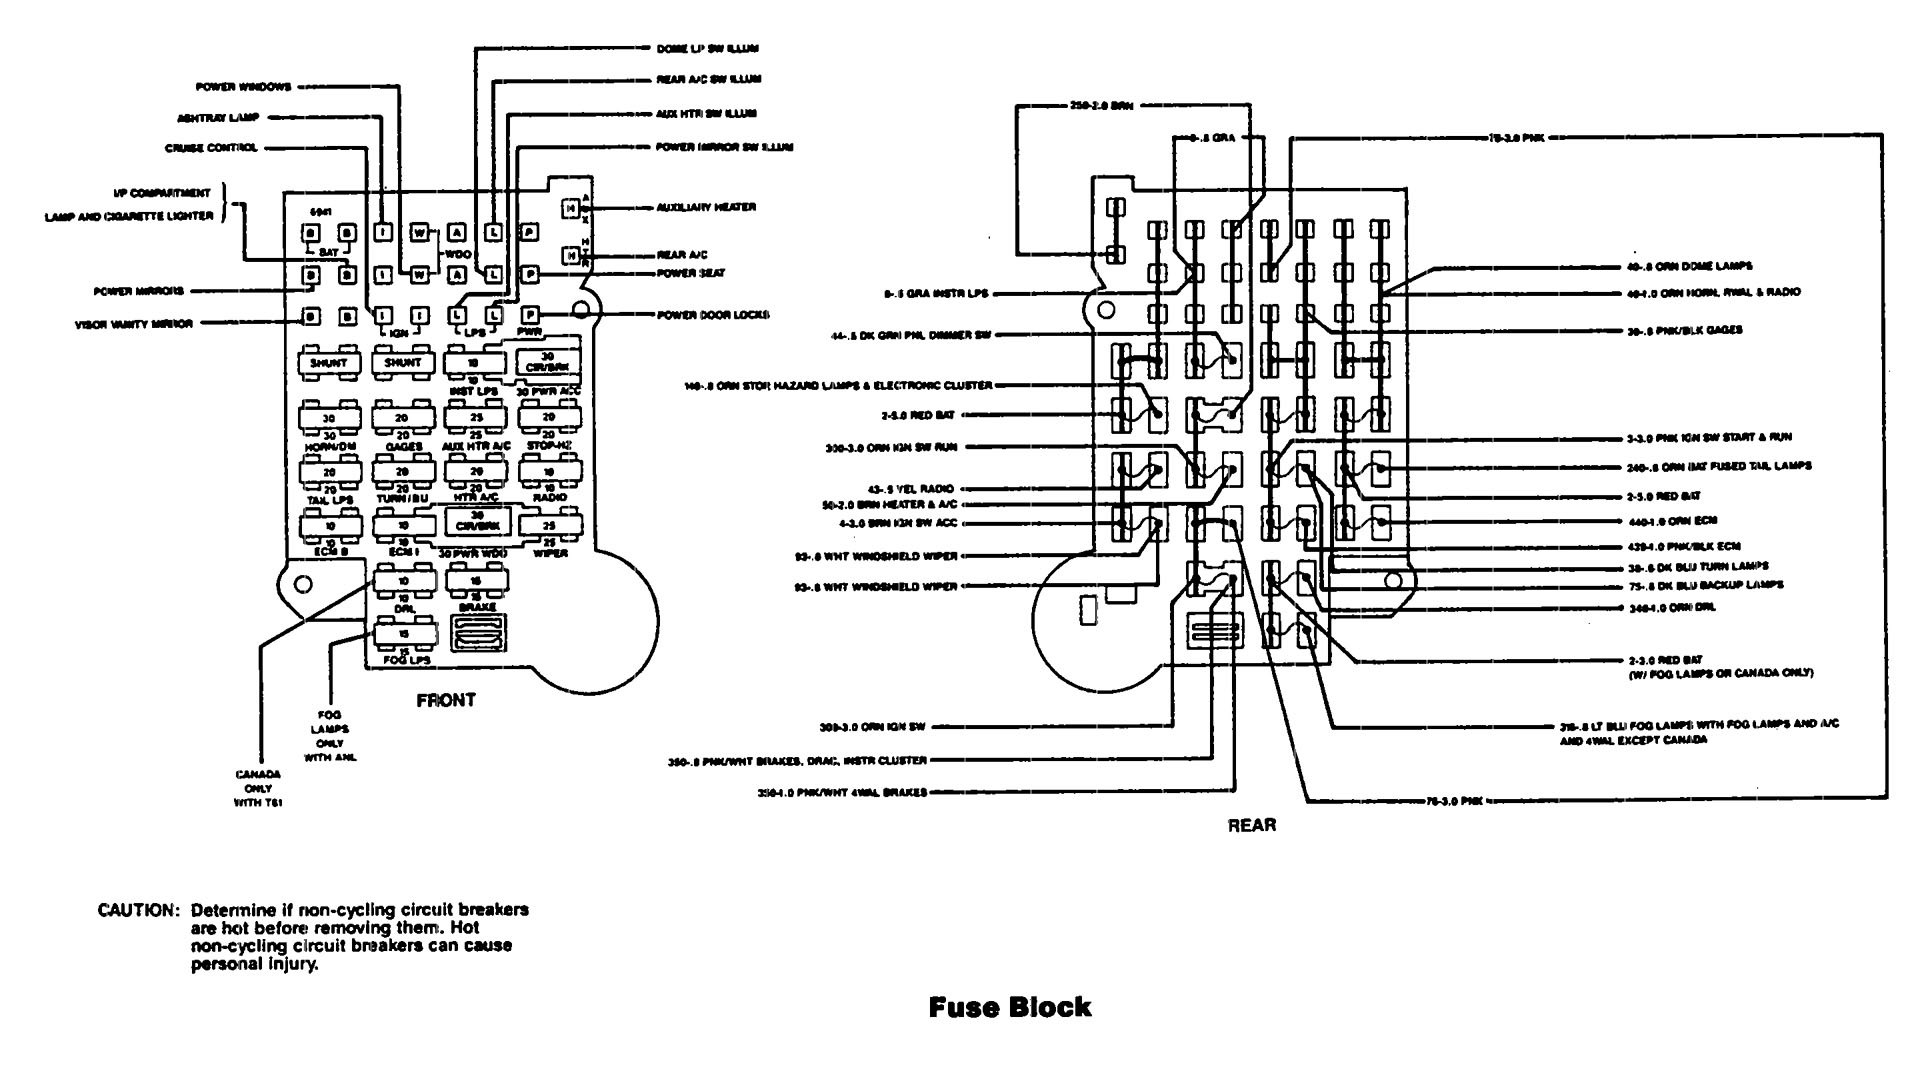 1991 Geo Tracker 4x4 Fuse Panel Diagram Wiring Library 97 Ranger Box 1990